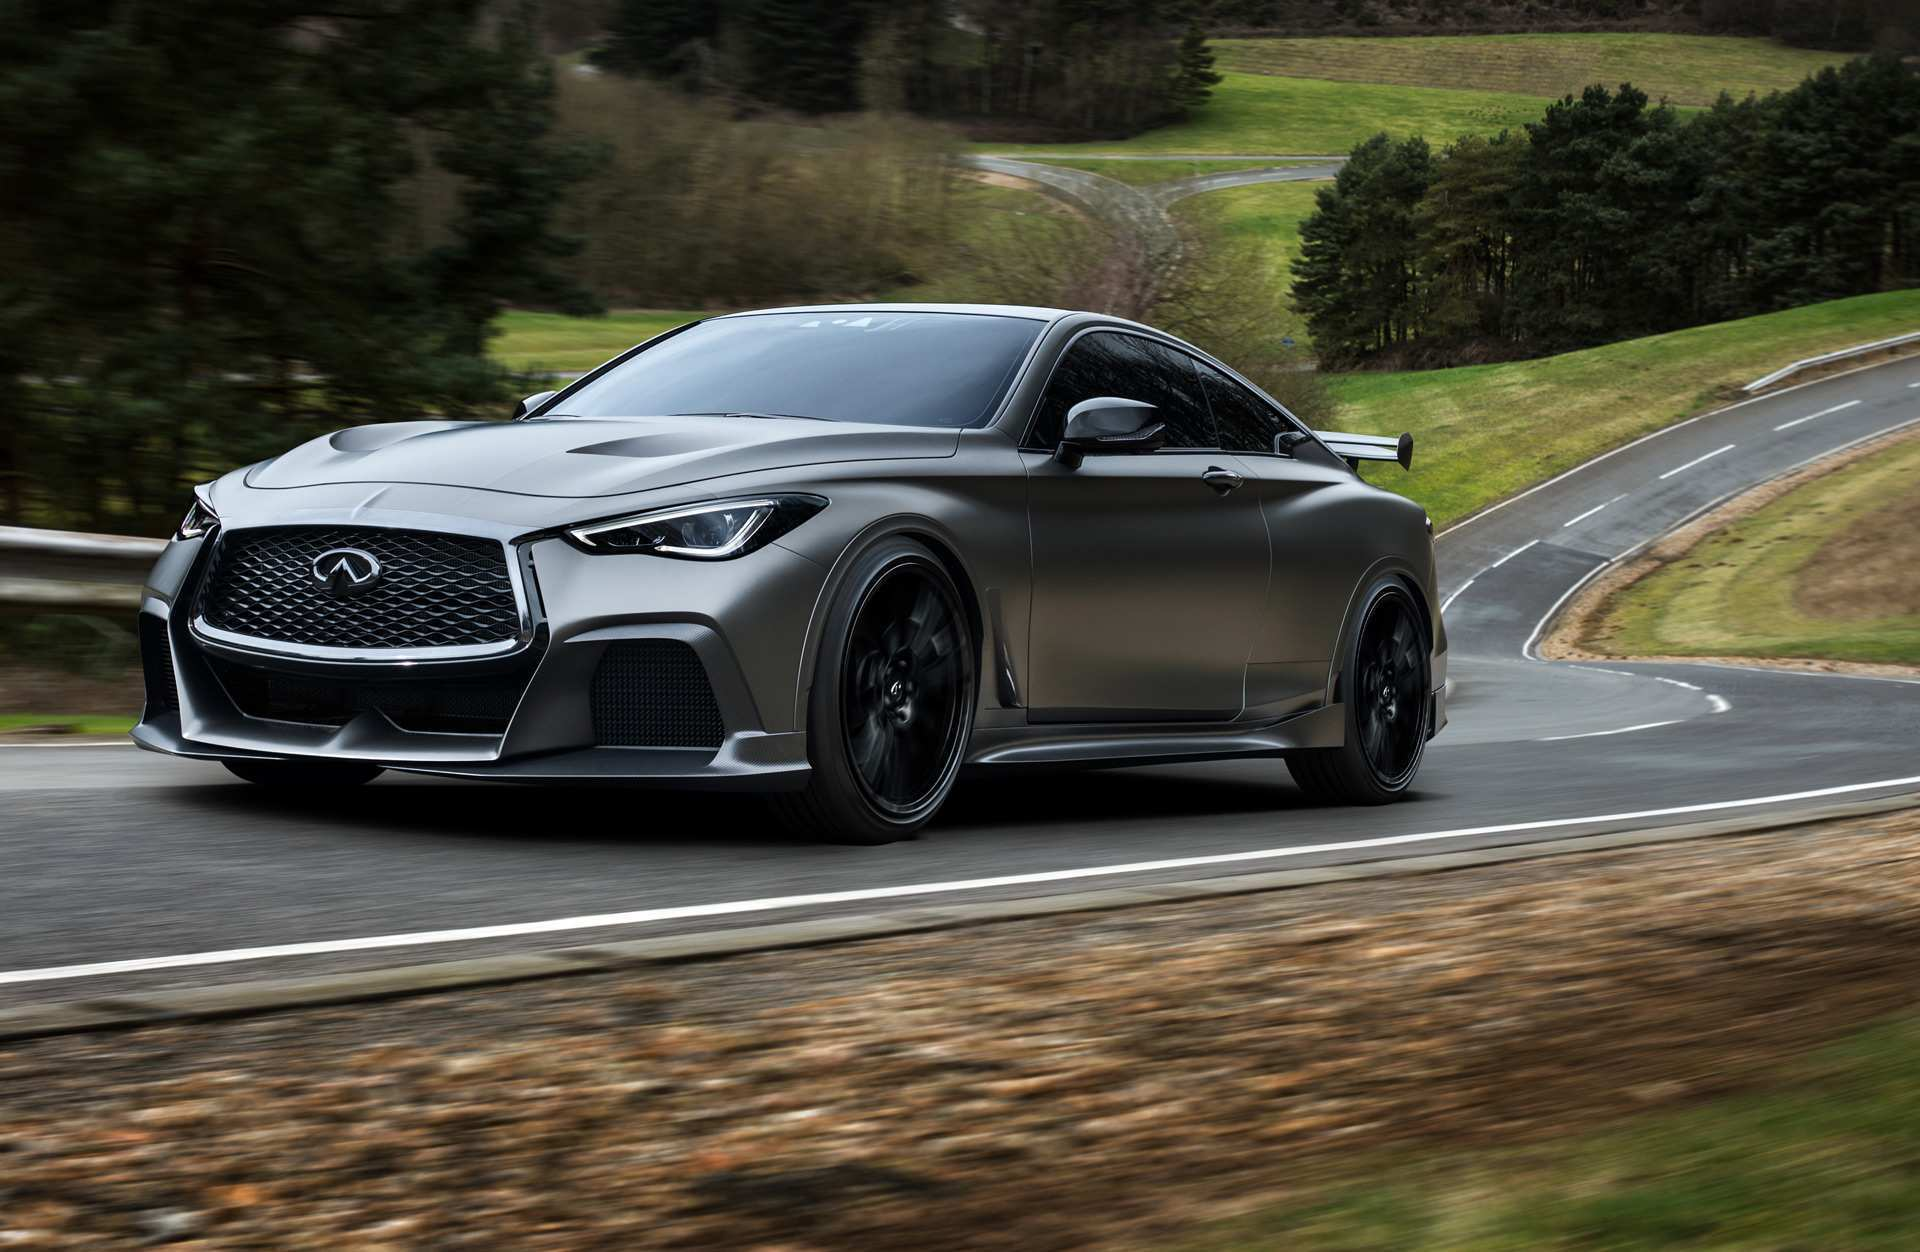 38 The Best 2019 Infiniti Q60s Configurations